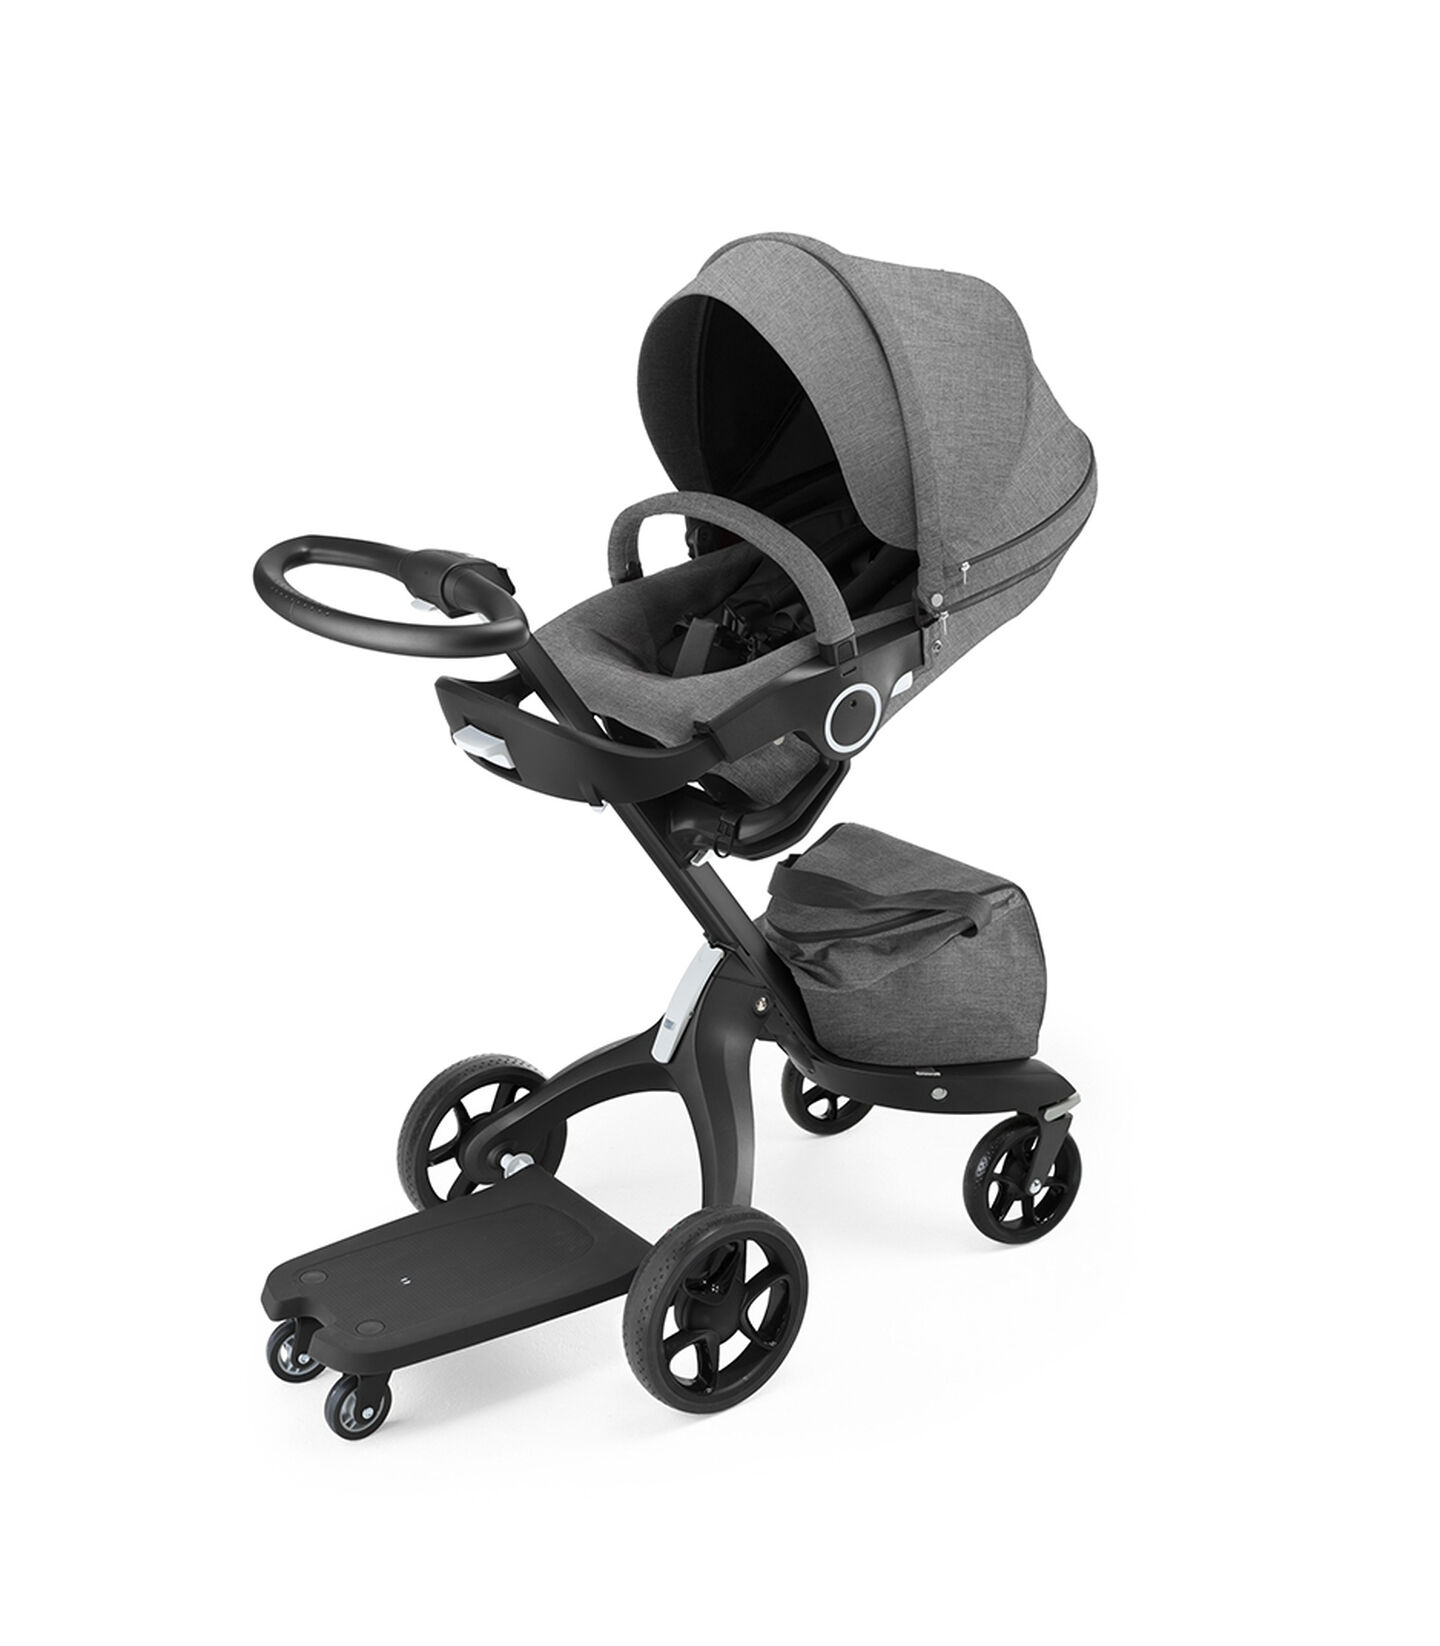 Stokke® Xplory® With Stokke® Stroller Seat Black Melange, and Sibling Board, Black, attached.